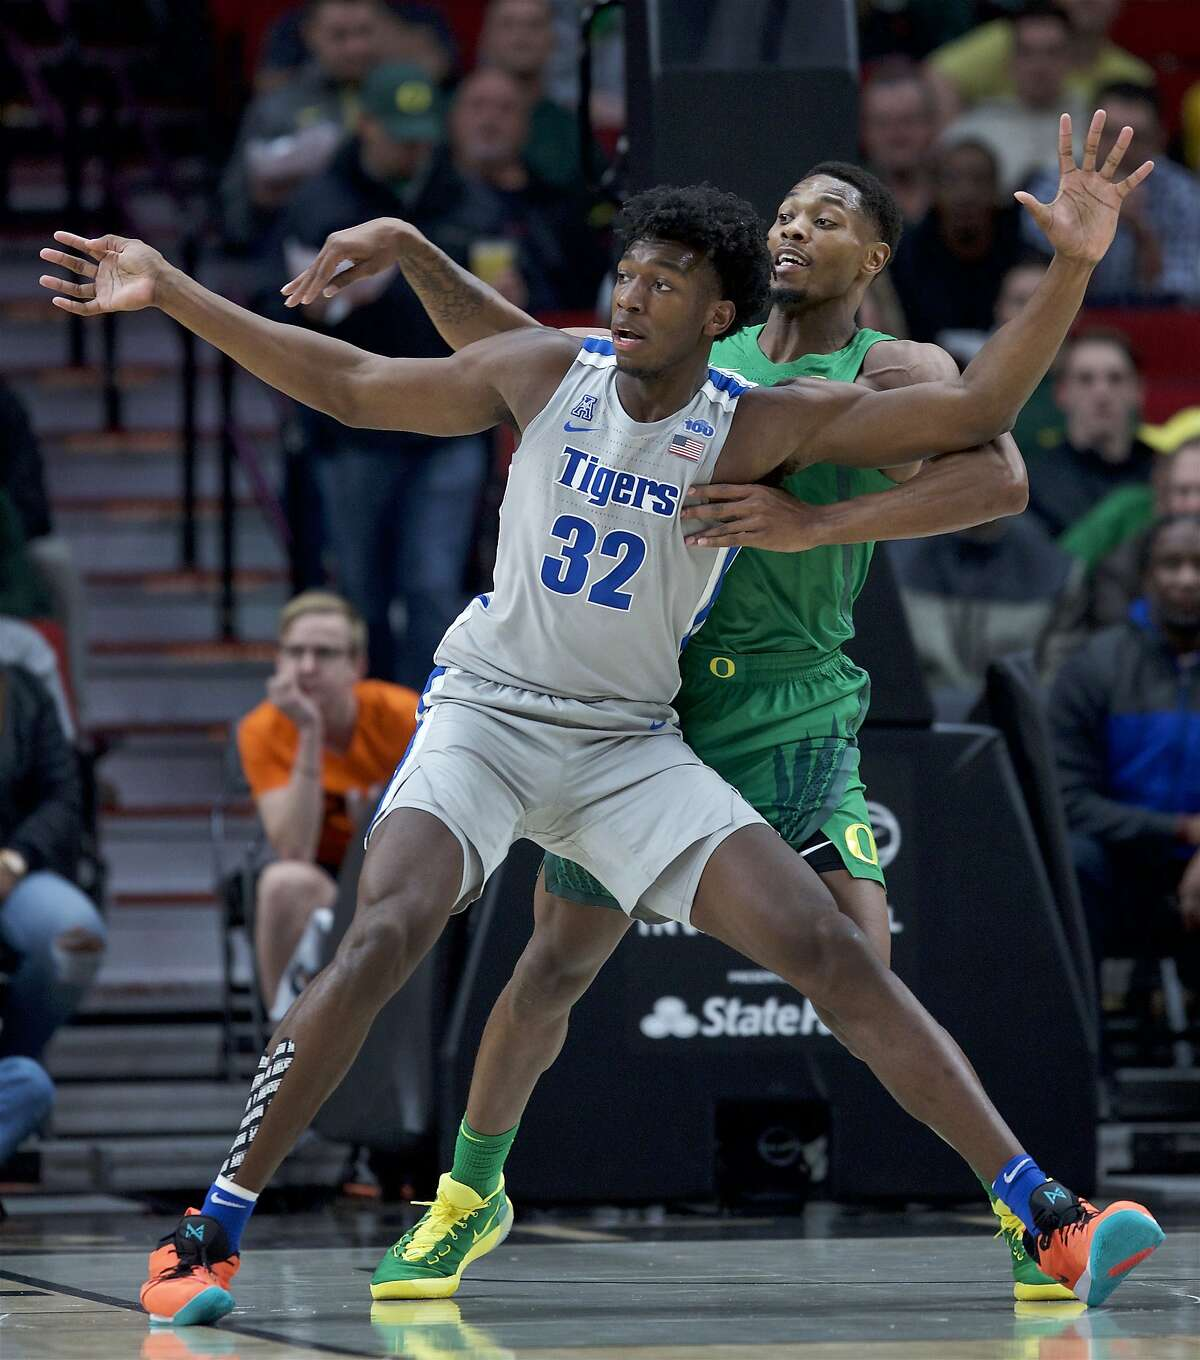 FILE - Memphis center James Wiseman (32) posts up against Oregon forward Shakur Juiston during the first half of an NCAA college basketball game in Portland, Ore., in this Tuesday, Nov. 12, 2019, file photo. At long last, James Wiseman is about to be on a team again. More than a year removed from the end of his three-game college career that was doomed almost before it started because of NCAA rulings regarding his eligibility, the 7-foot-1 left-hander will be one of the first players selected in Wednesday's, Nov. 18, 2020, NBA draft. It's hard to envision a scenario where he doesn't go in the first three picks, which are currently held by Minnesota, Golden State and Charlotte. (AP Photo/Craig Mitchelldyer, File)